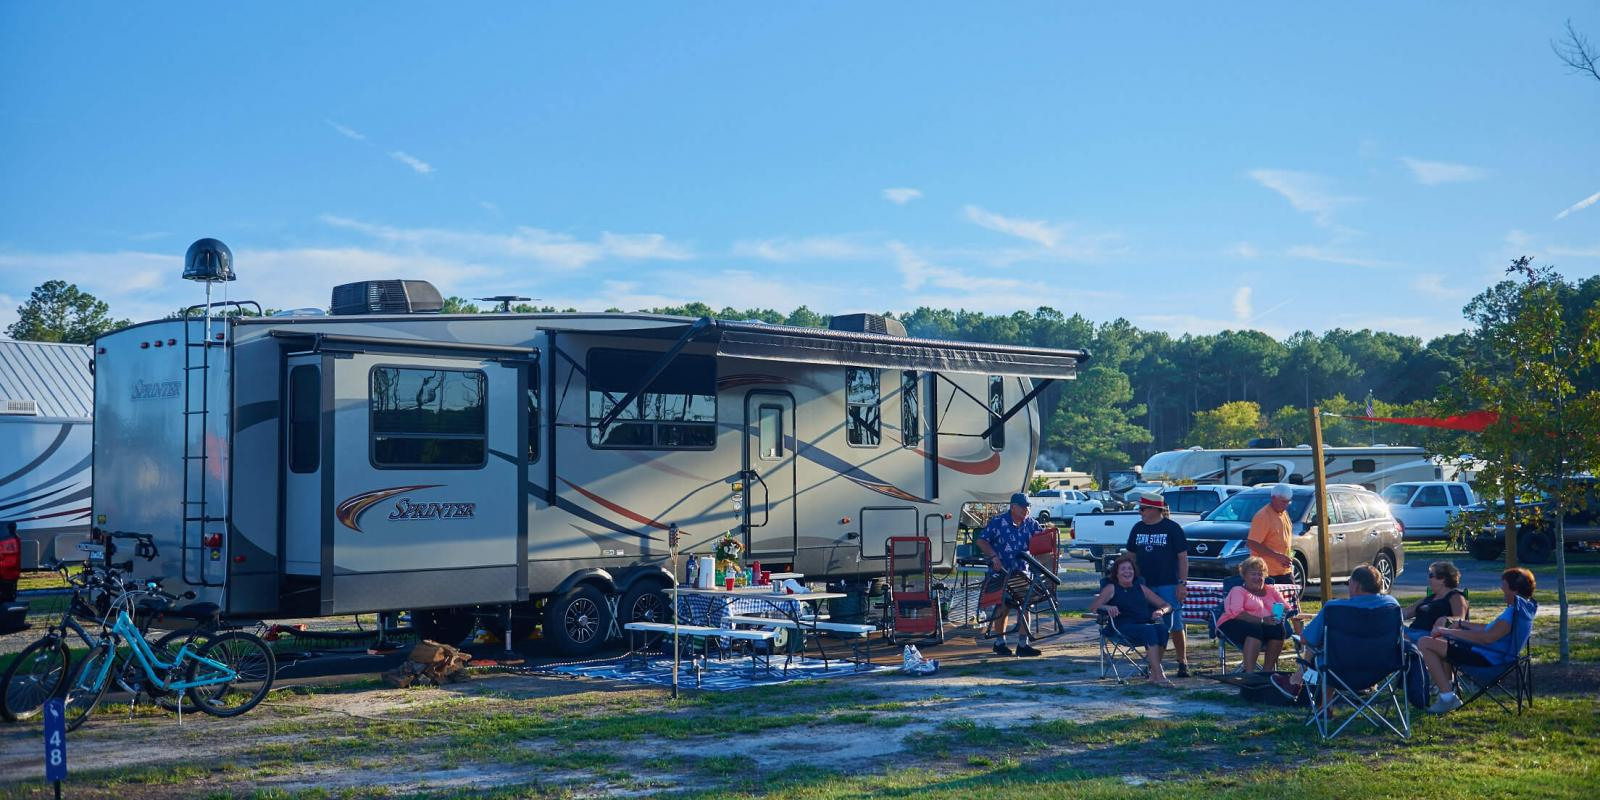 Massey's Landing RV Resort